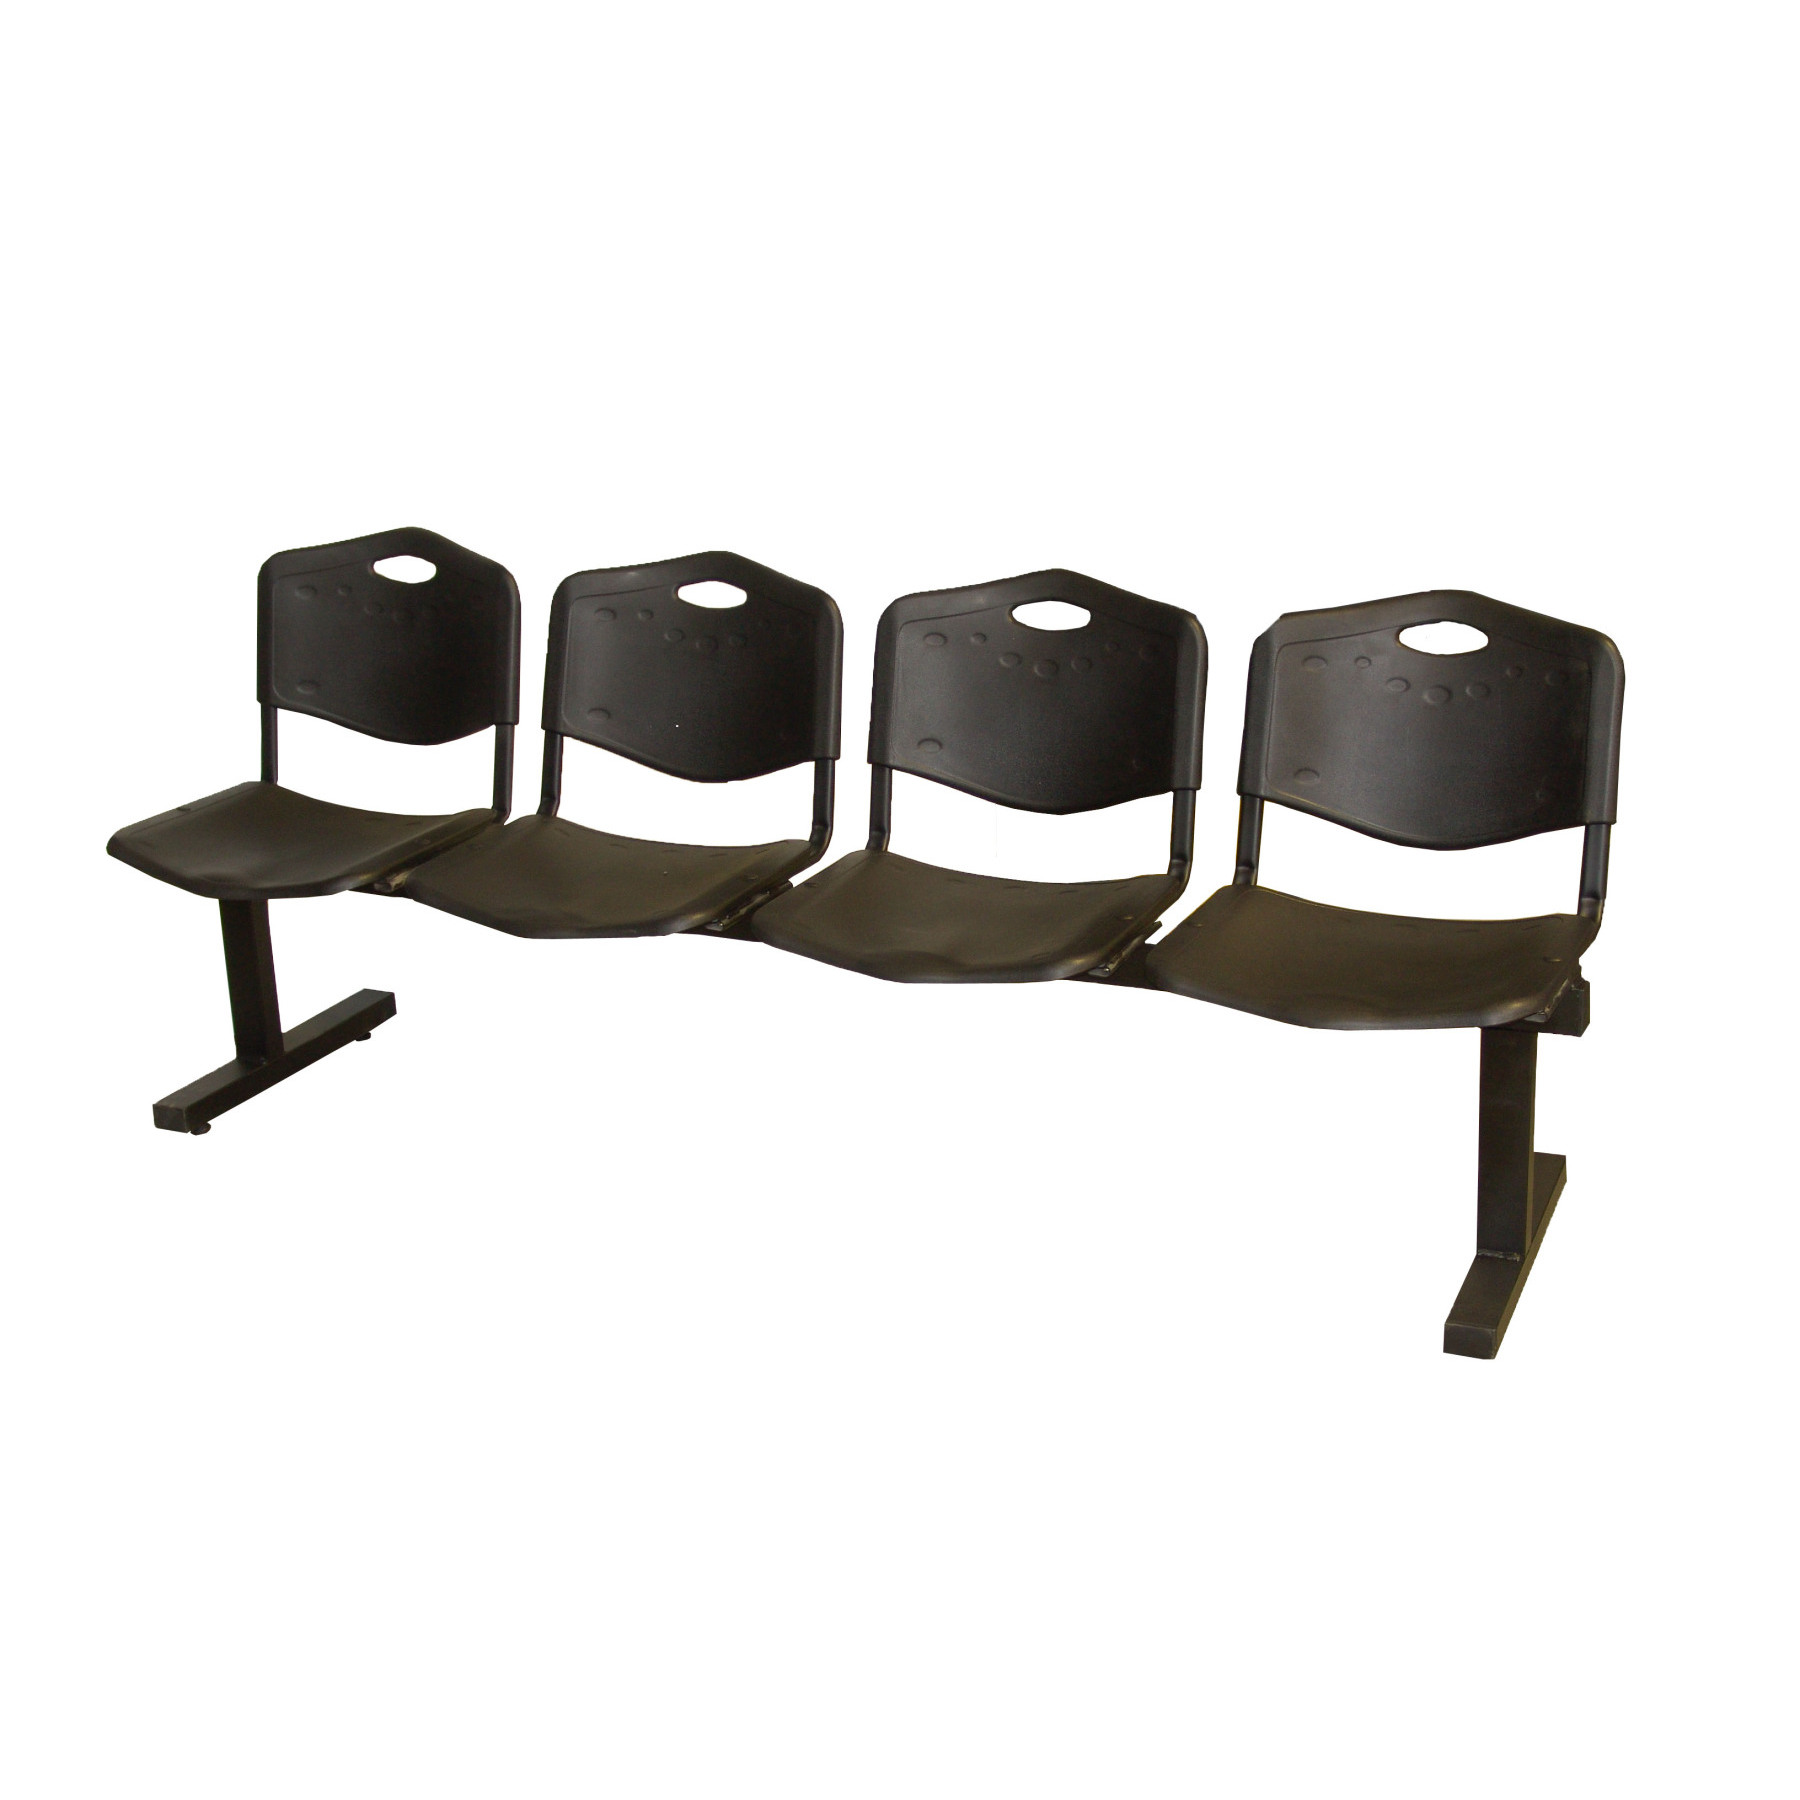 Bench Waiting From Four Squares And Iron's Structure In Black Color Up Seat And Backstop In PVC Black Color TAPHOLE